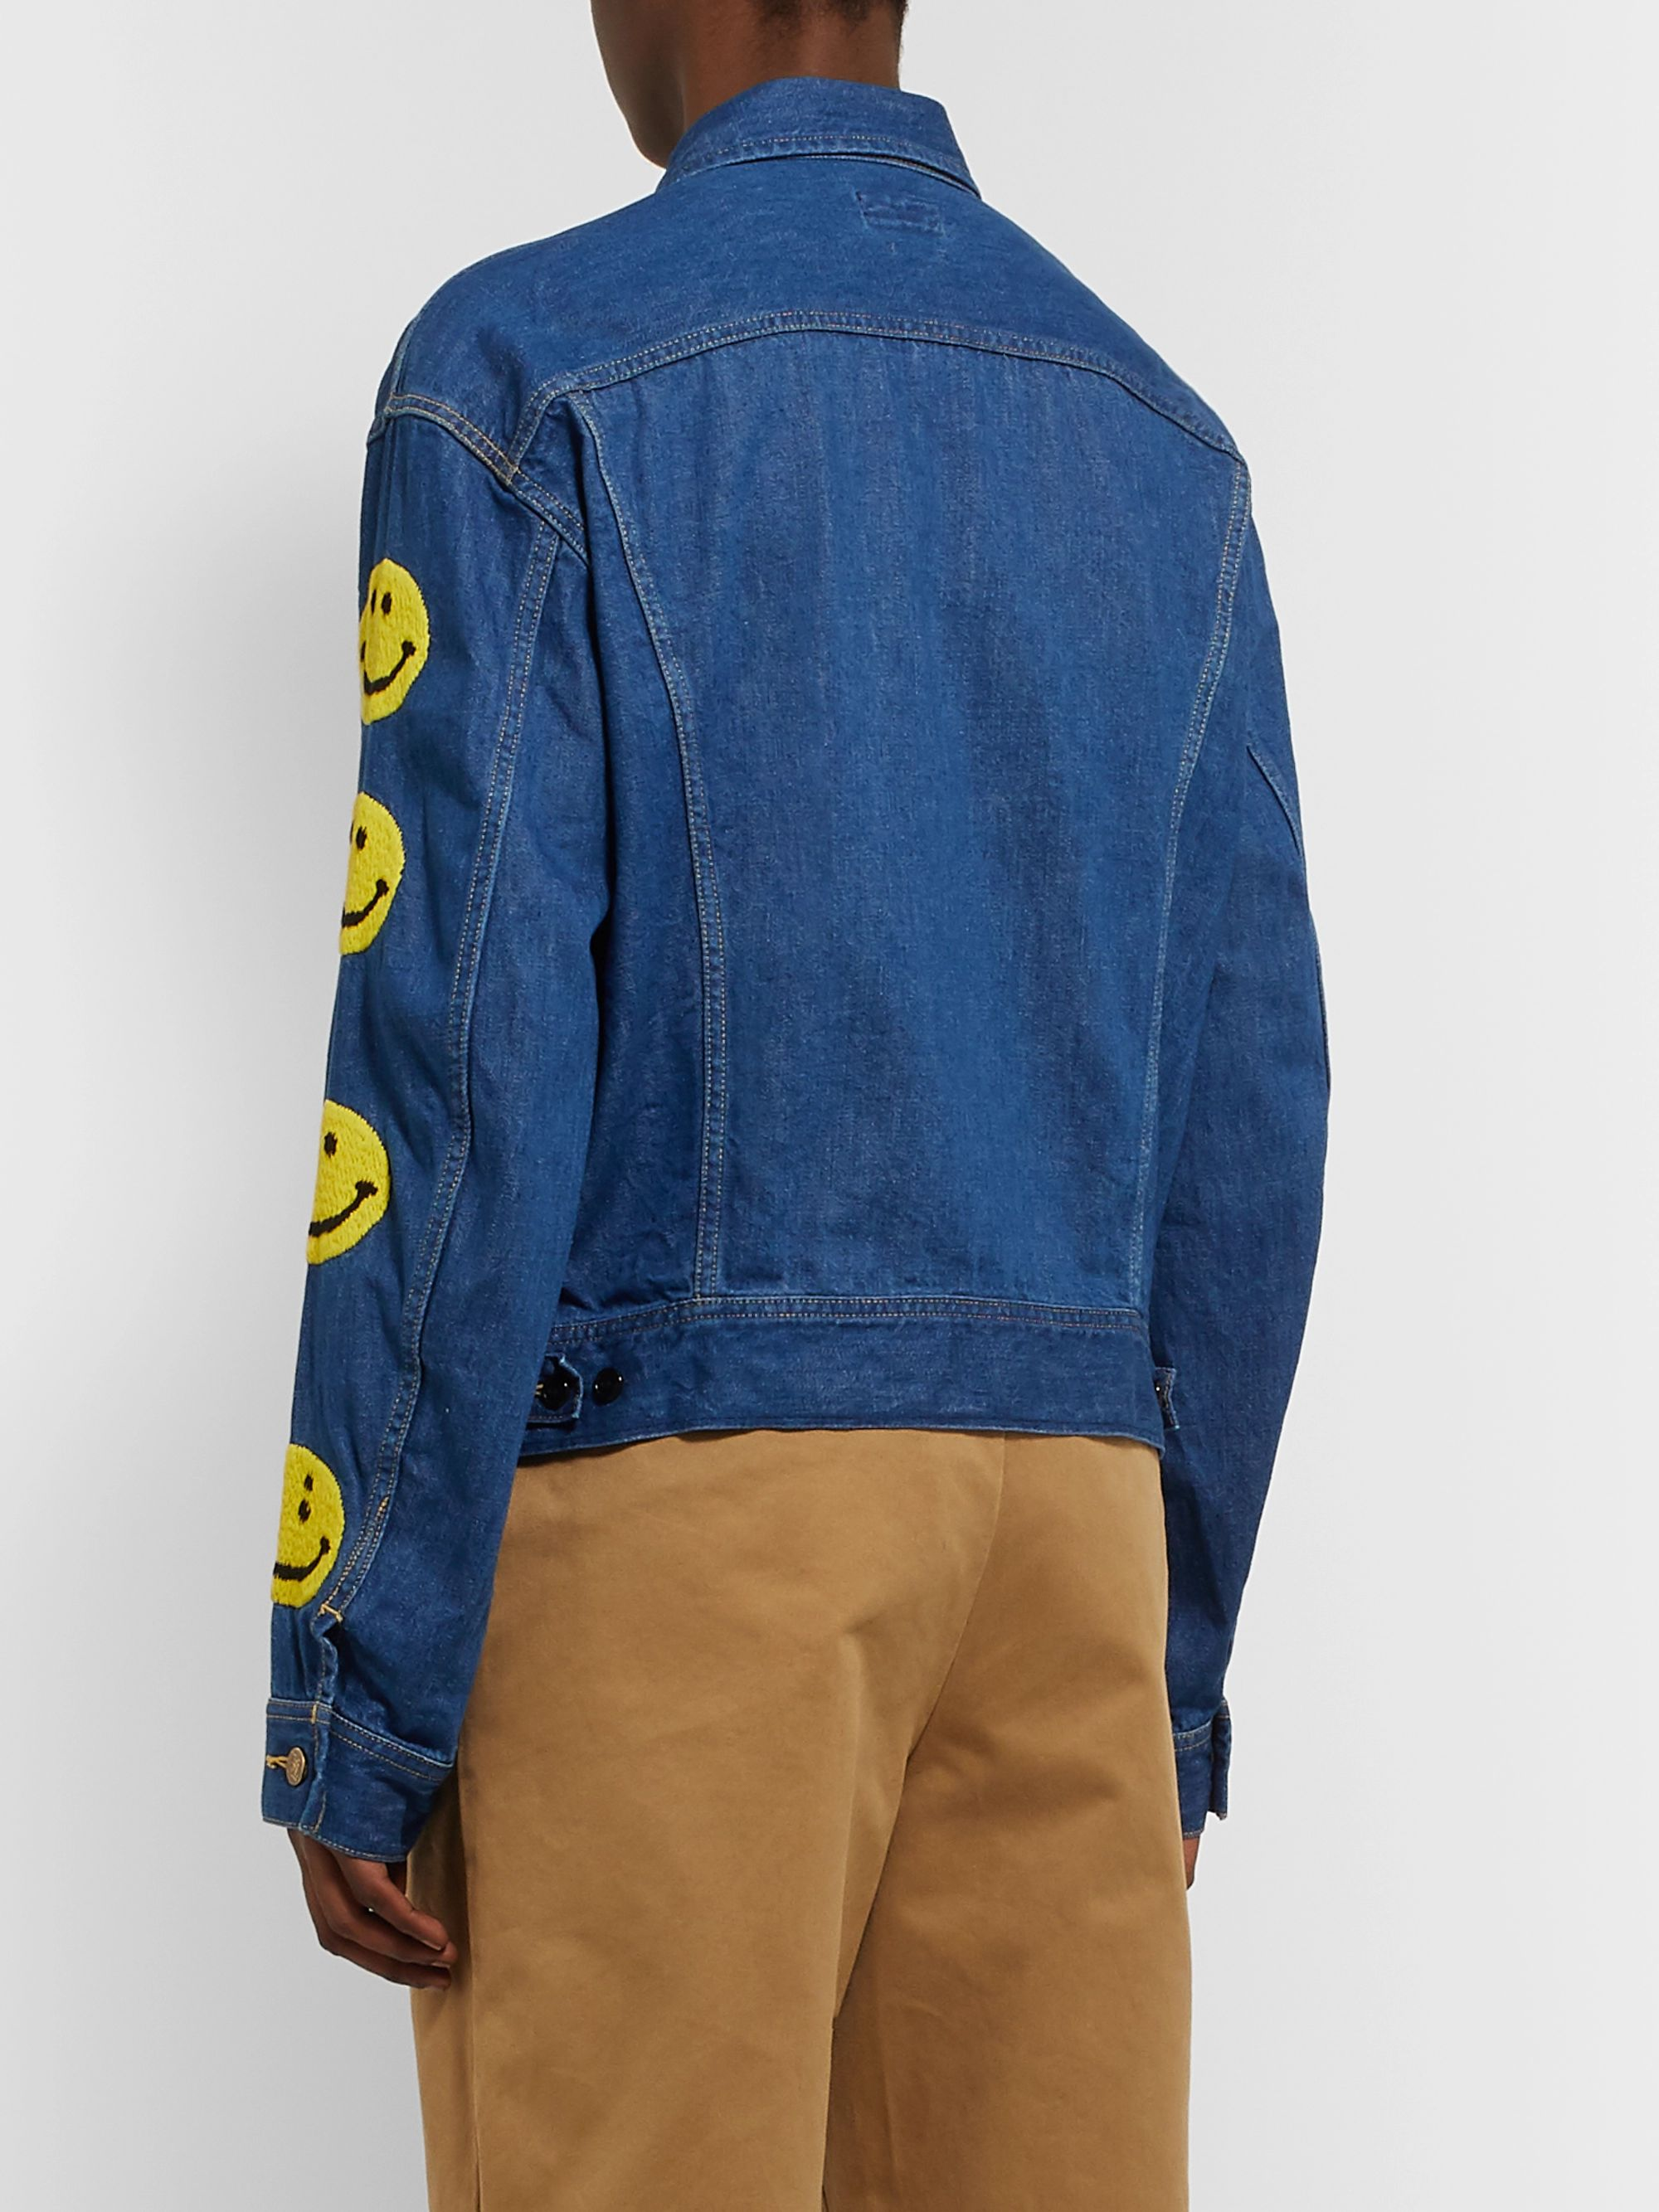 KAPITAL Embroidered Denim Jacket